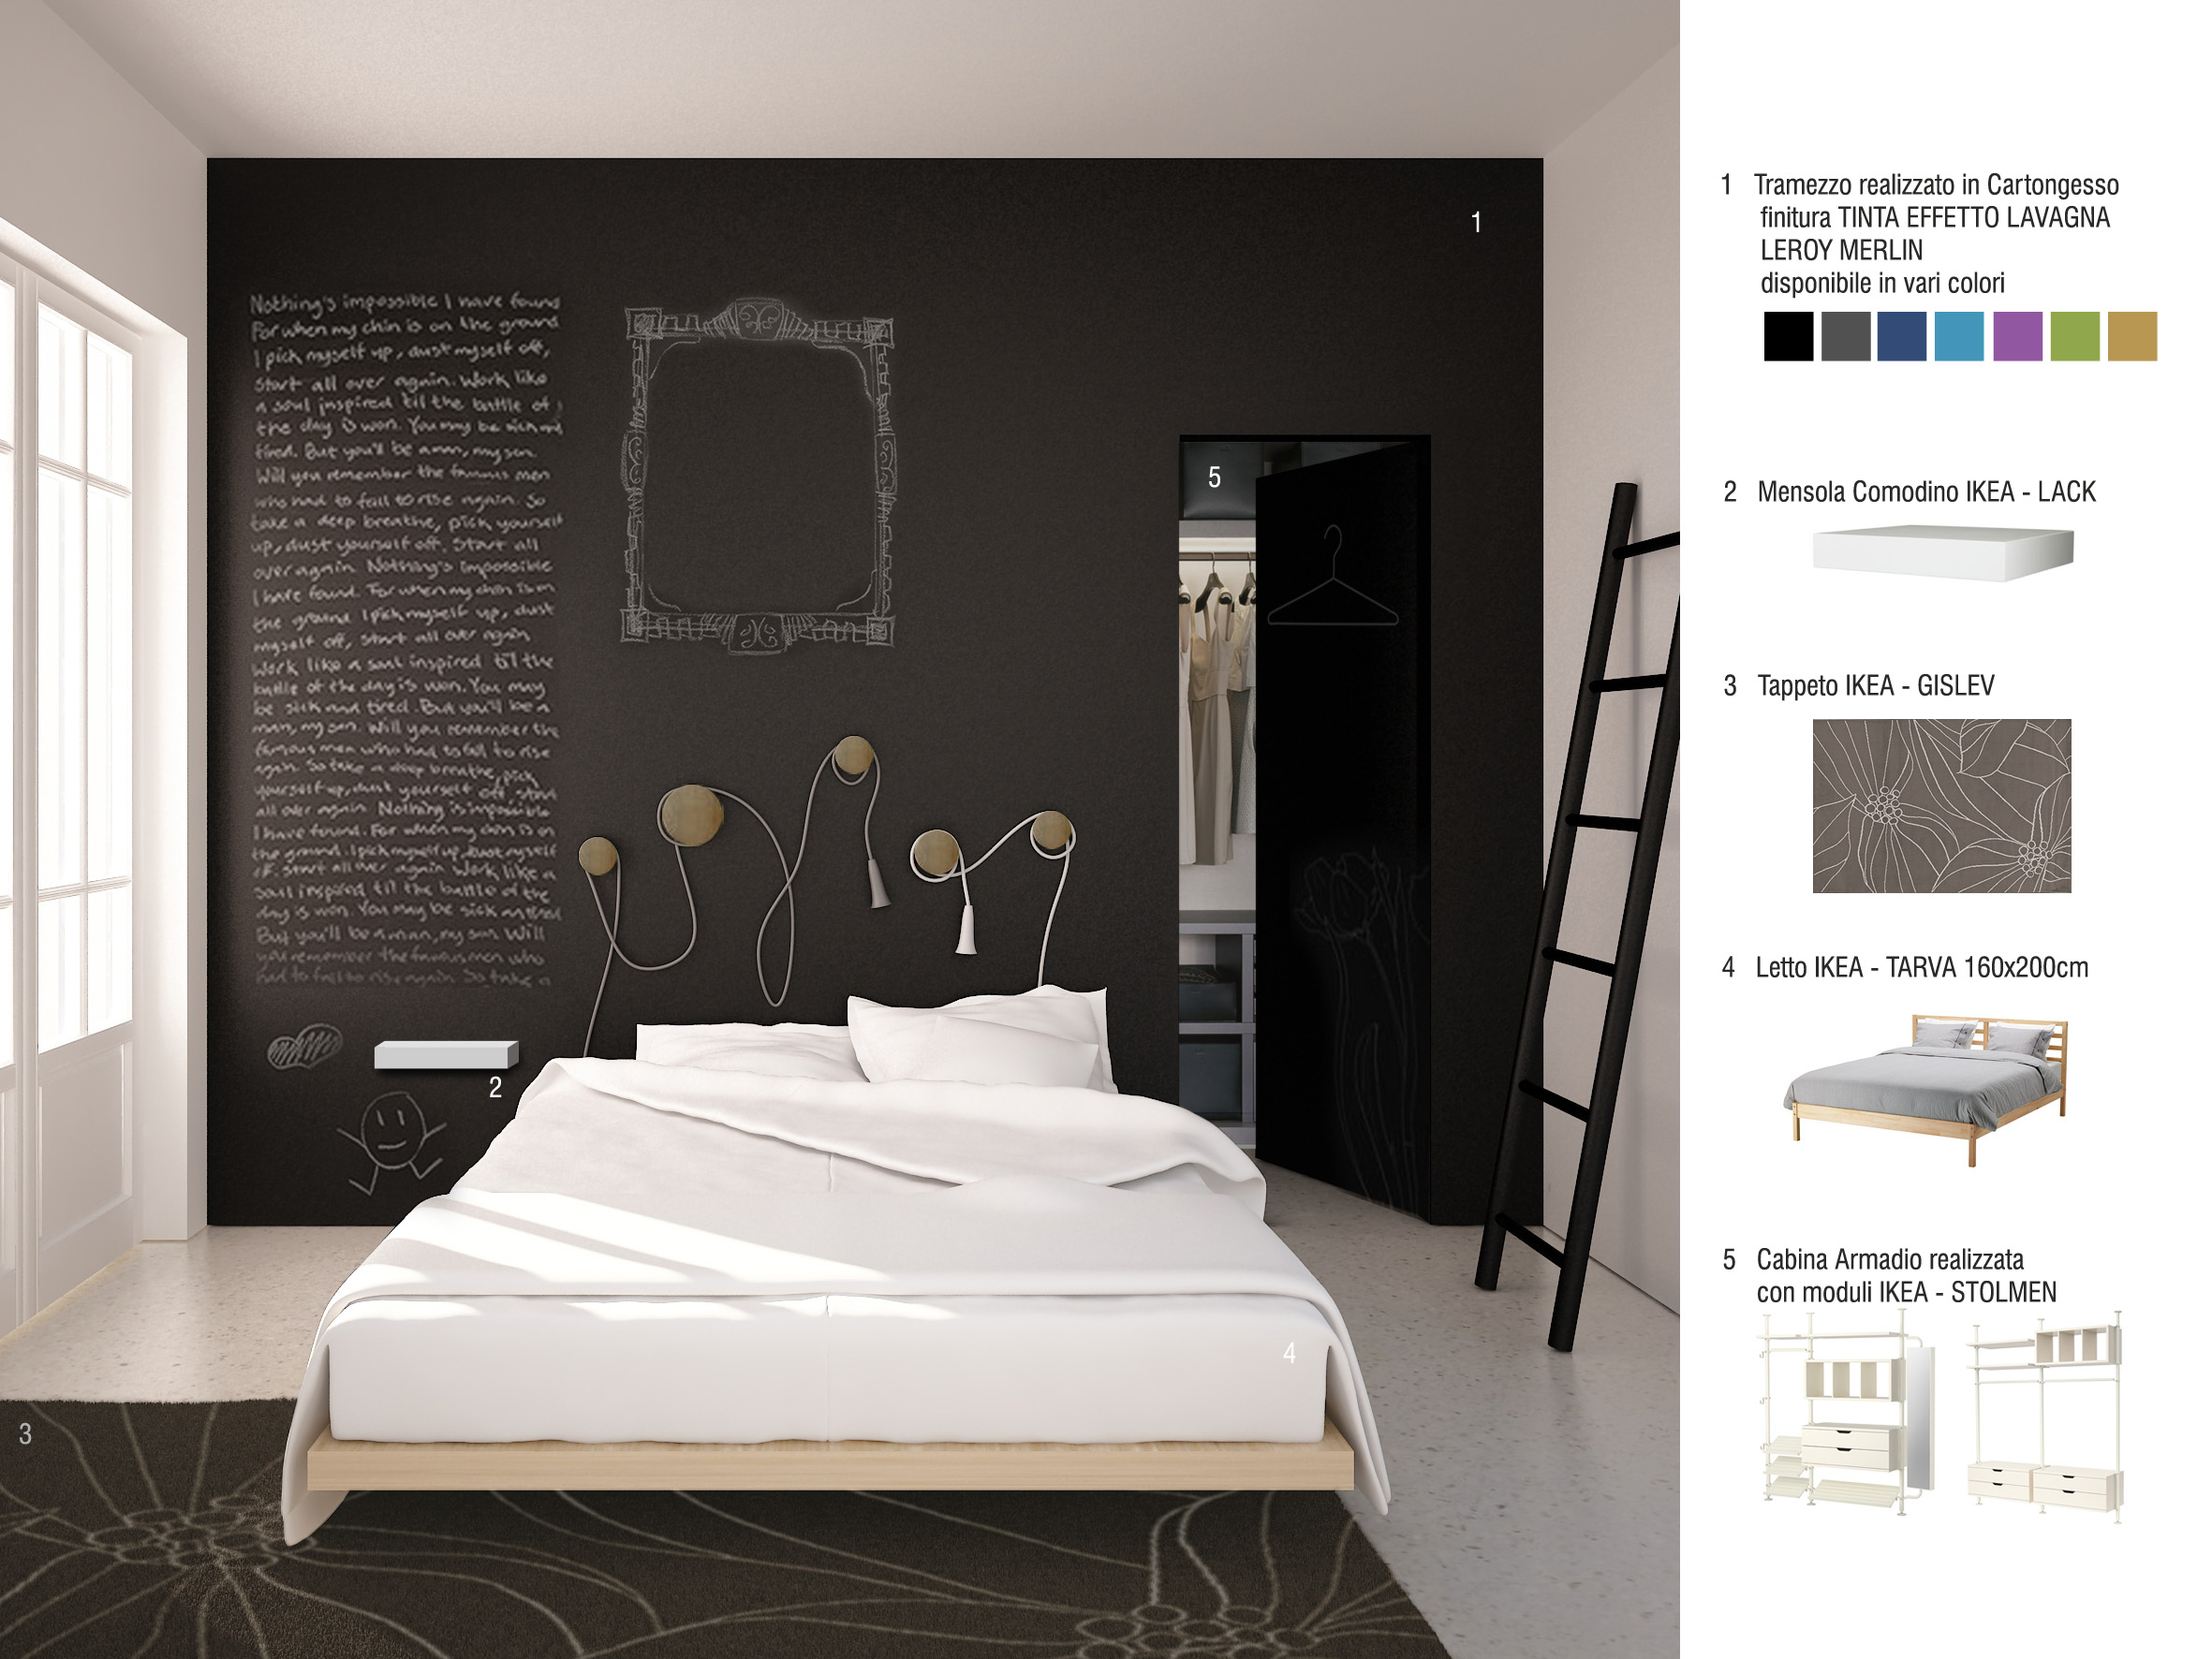 10 modi per realizzare una cabina armadio low cost fotogallery idealista news for Idee armadio camera da letto